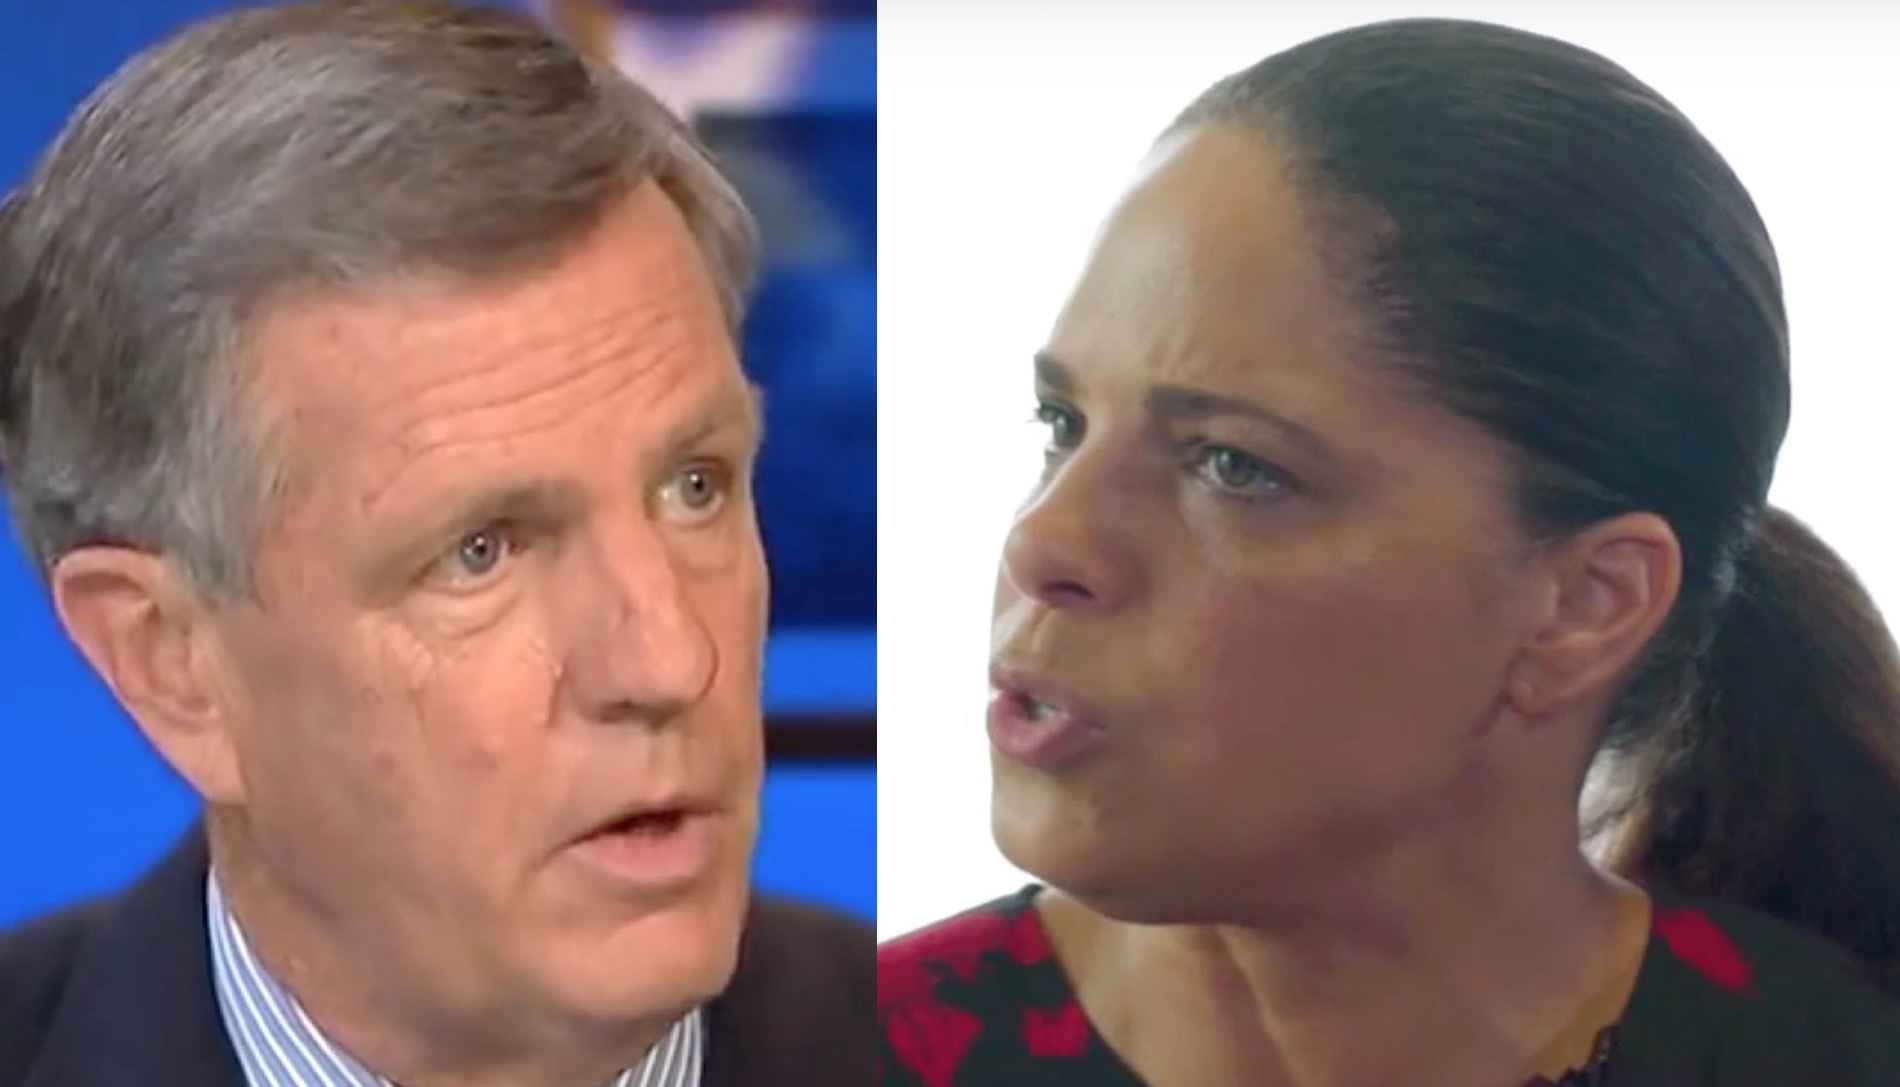 Ana Kasparian Nose Job brit hume slaps down soledad o'brien over failed attempt to